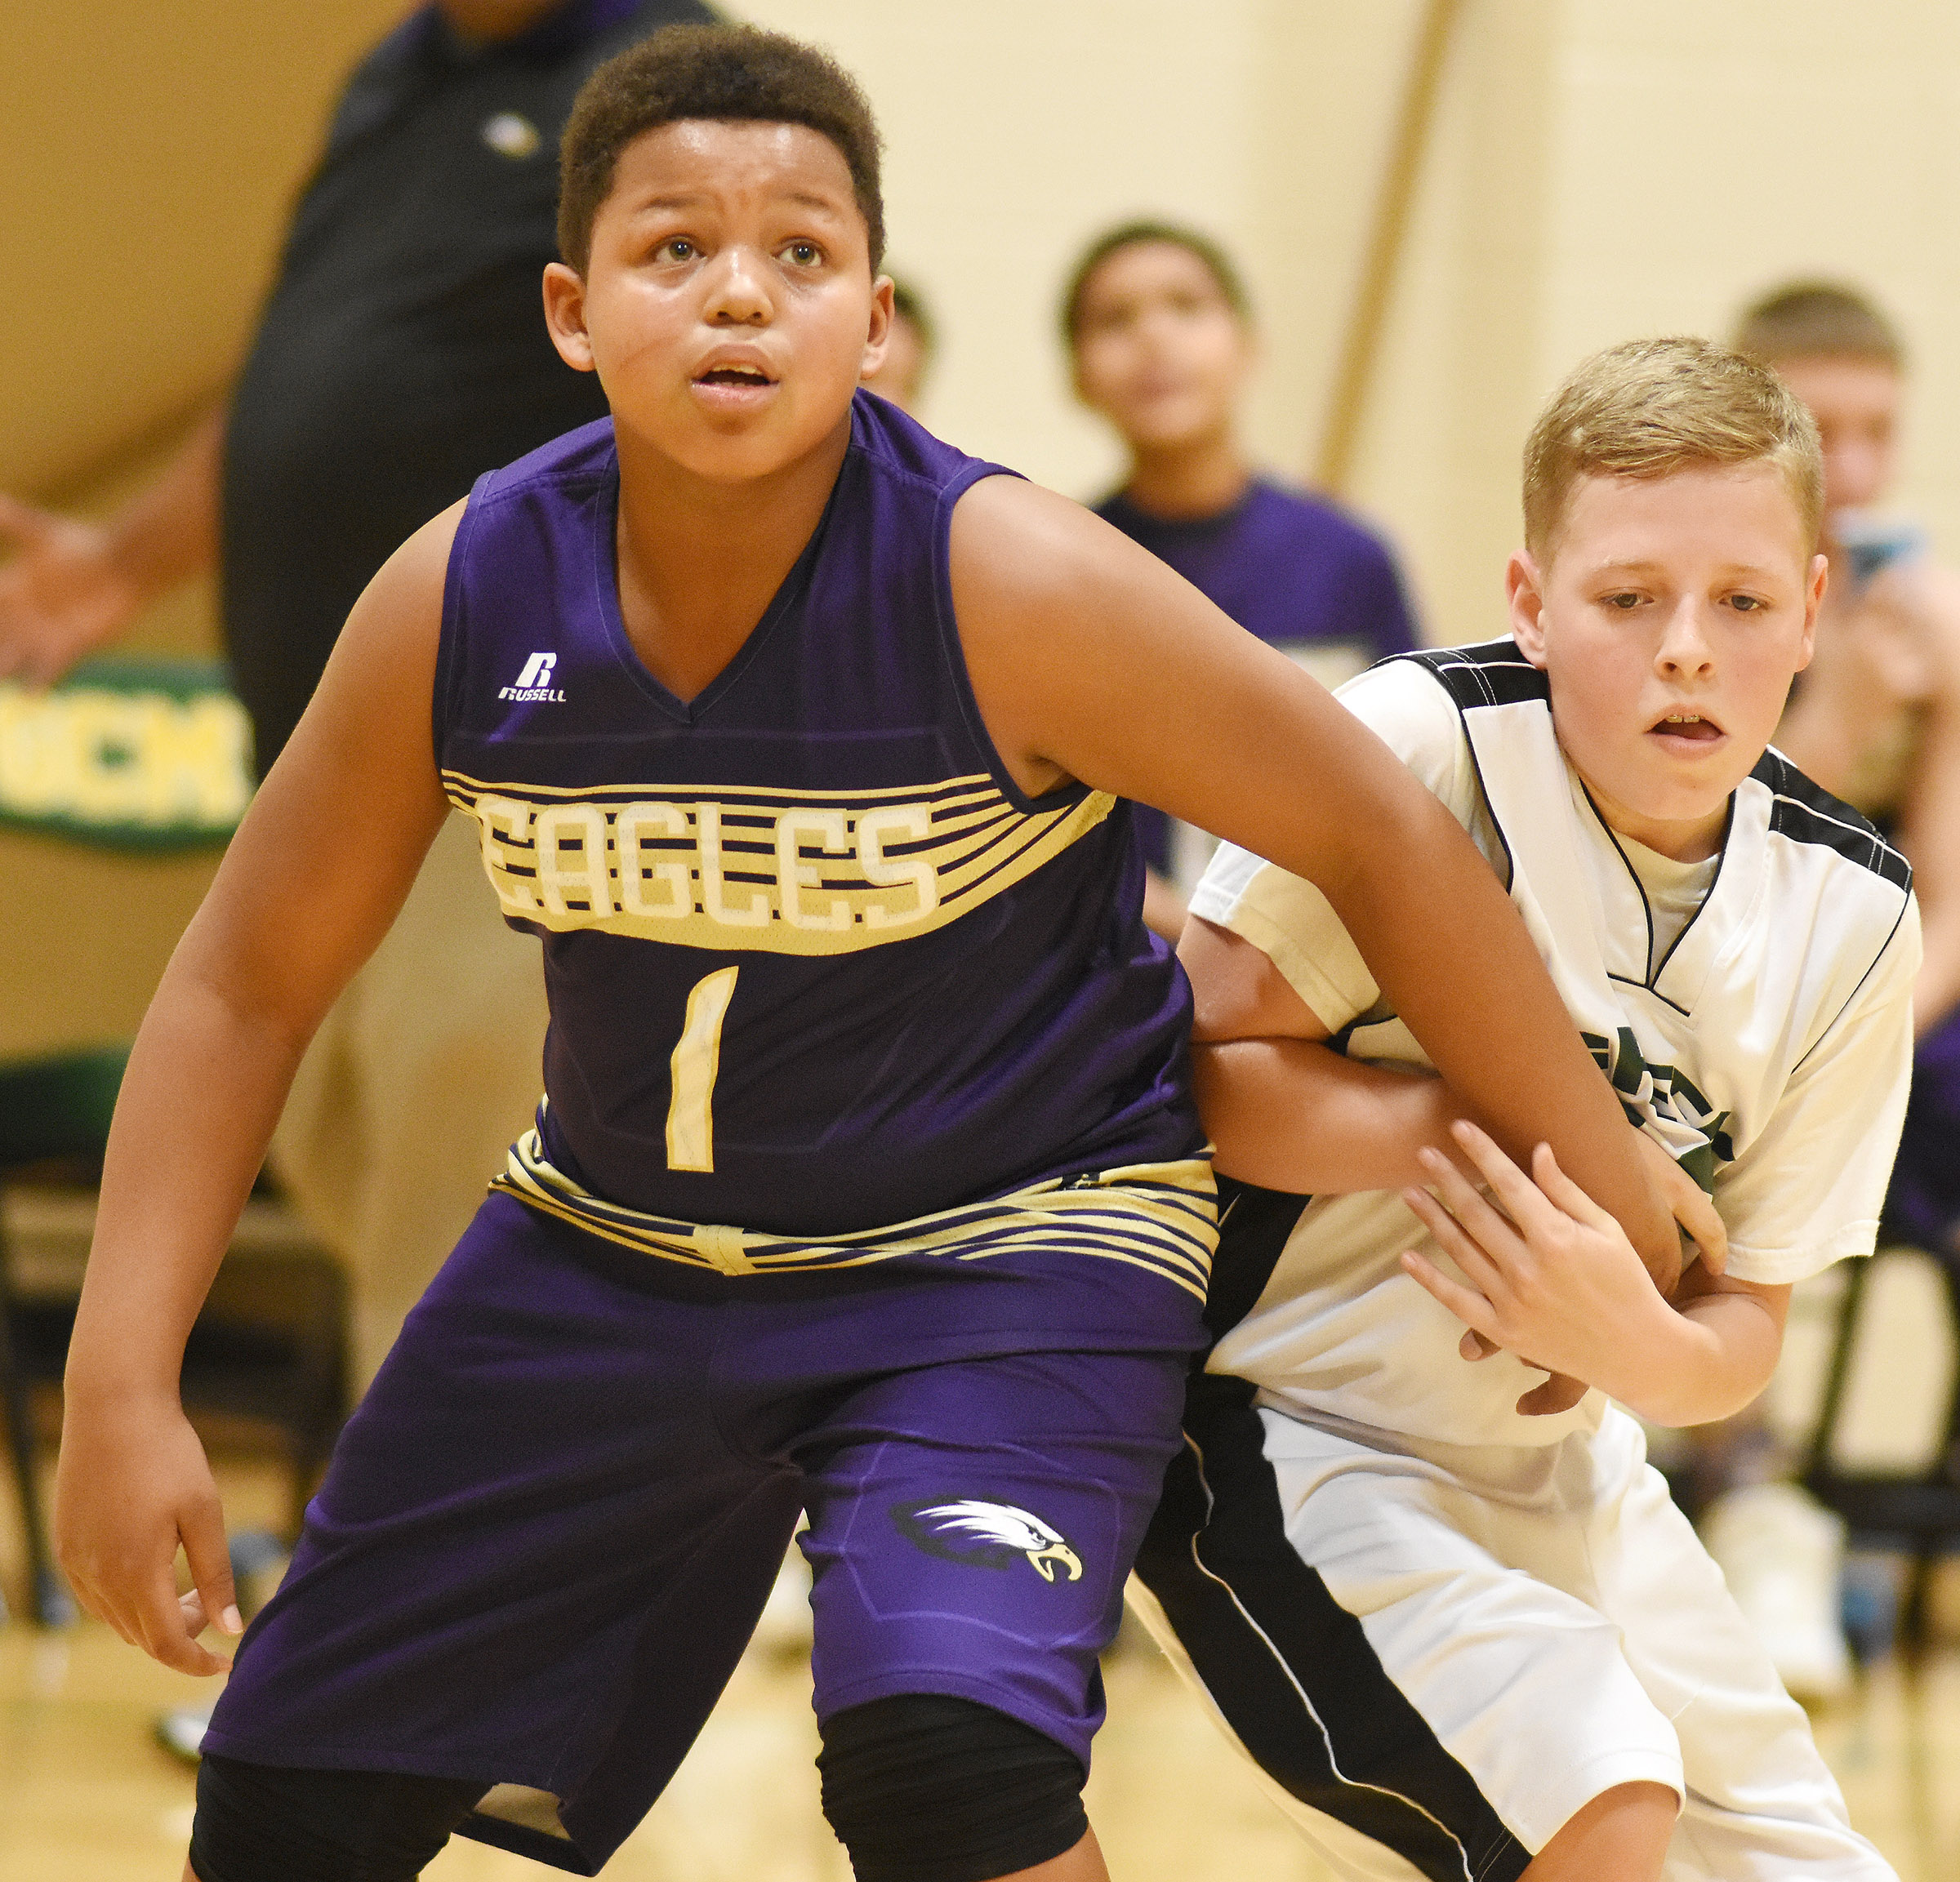 CMS seventh-grader Keondre Weathers looks for a rebound.